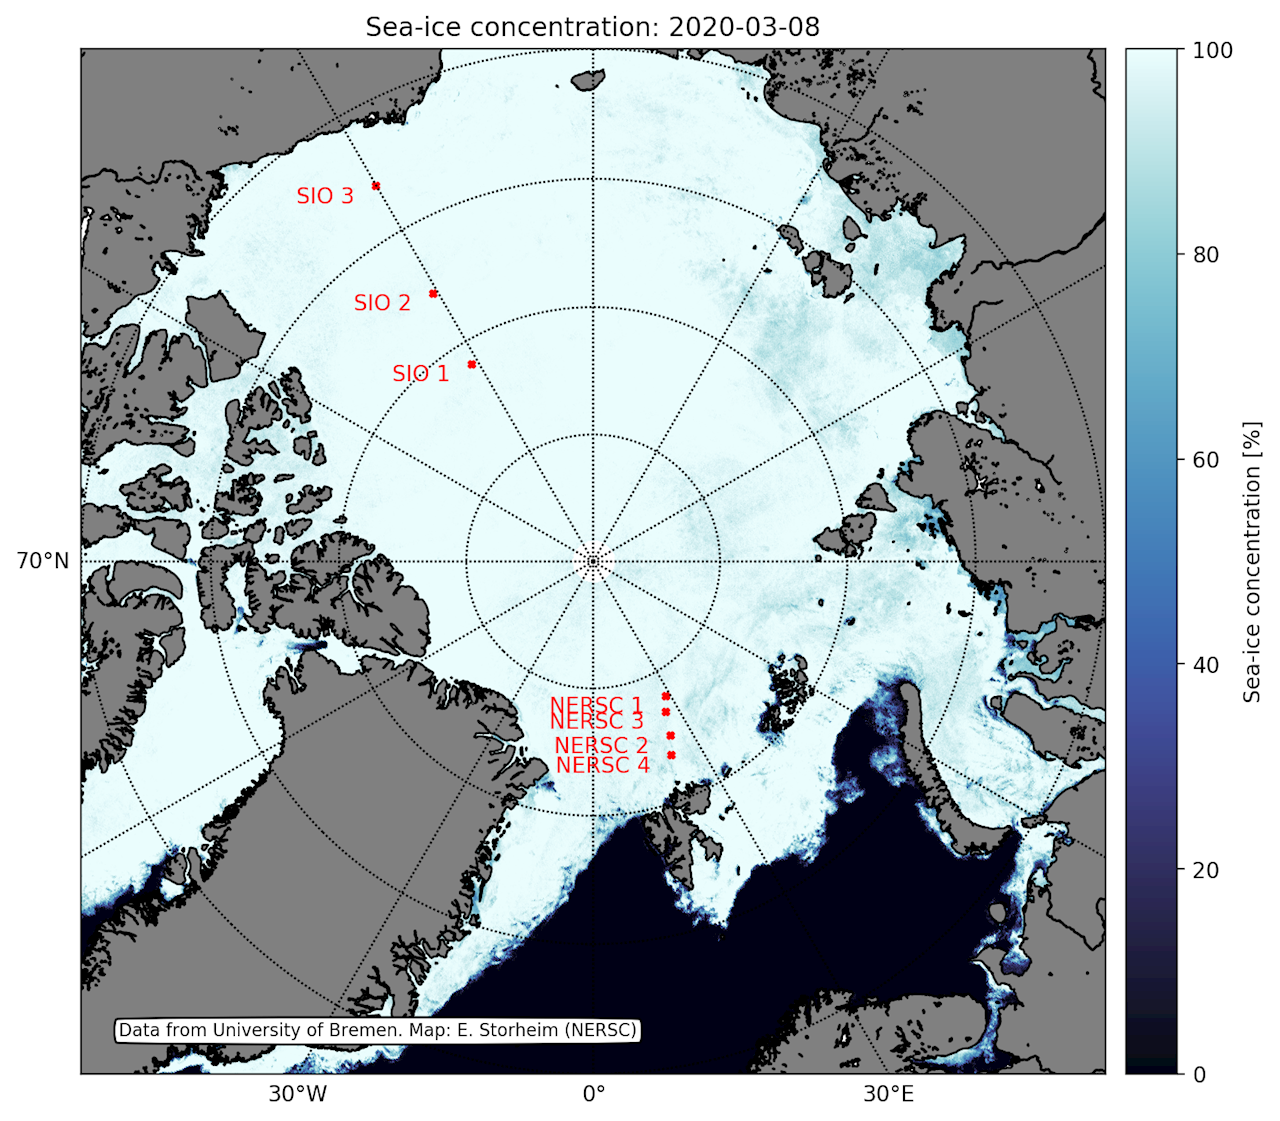 Figure 2. The geometry of the 2019–2020 Coordinated Arctic Acoustic Thermometry Experiment (CAATEX) and the Integrated Arctic Observation System (INTAROS) experiments. The acoustic moorings at SIO1 and NERSC1 carry both source and receivers. There are four vertical receiving arrays: SIO2, SIO3, NERSC2, and NERSC3. The mooring at NERSC4 (green) has conventional oceanographic instrumentation to measure temperature, salinity, and currents. The SIO moorings were deployed by Scripps Institution of Oceanography using the US Coast Guard ice breaker Healy. The sea-ice concentration on 31 October 2019 is from the Advanced Microwave Scanning Radiometer 2 (AMSR2) dataset provided by the University of Bremen (Spreen et al., 2008). (Source: https://seaice.uni-bremen.de/sea-ice-concentration/)